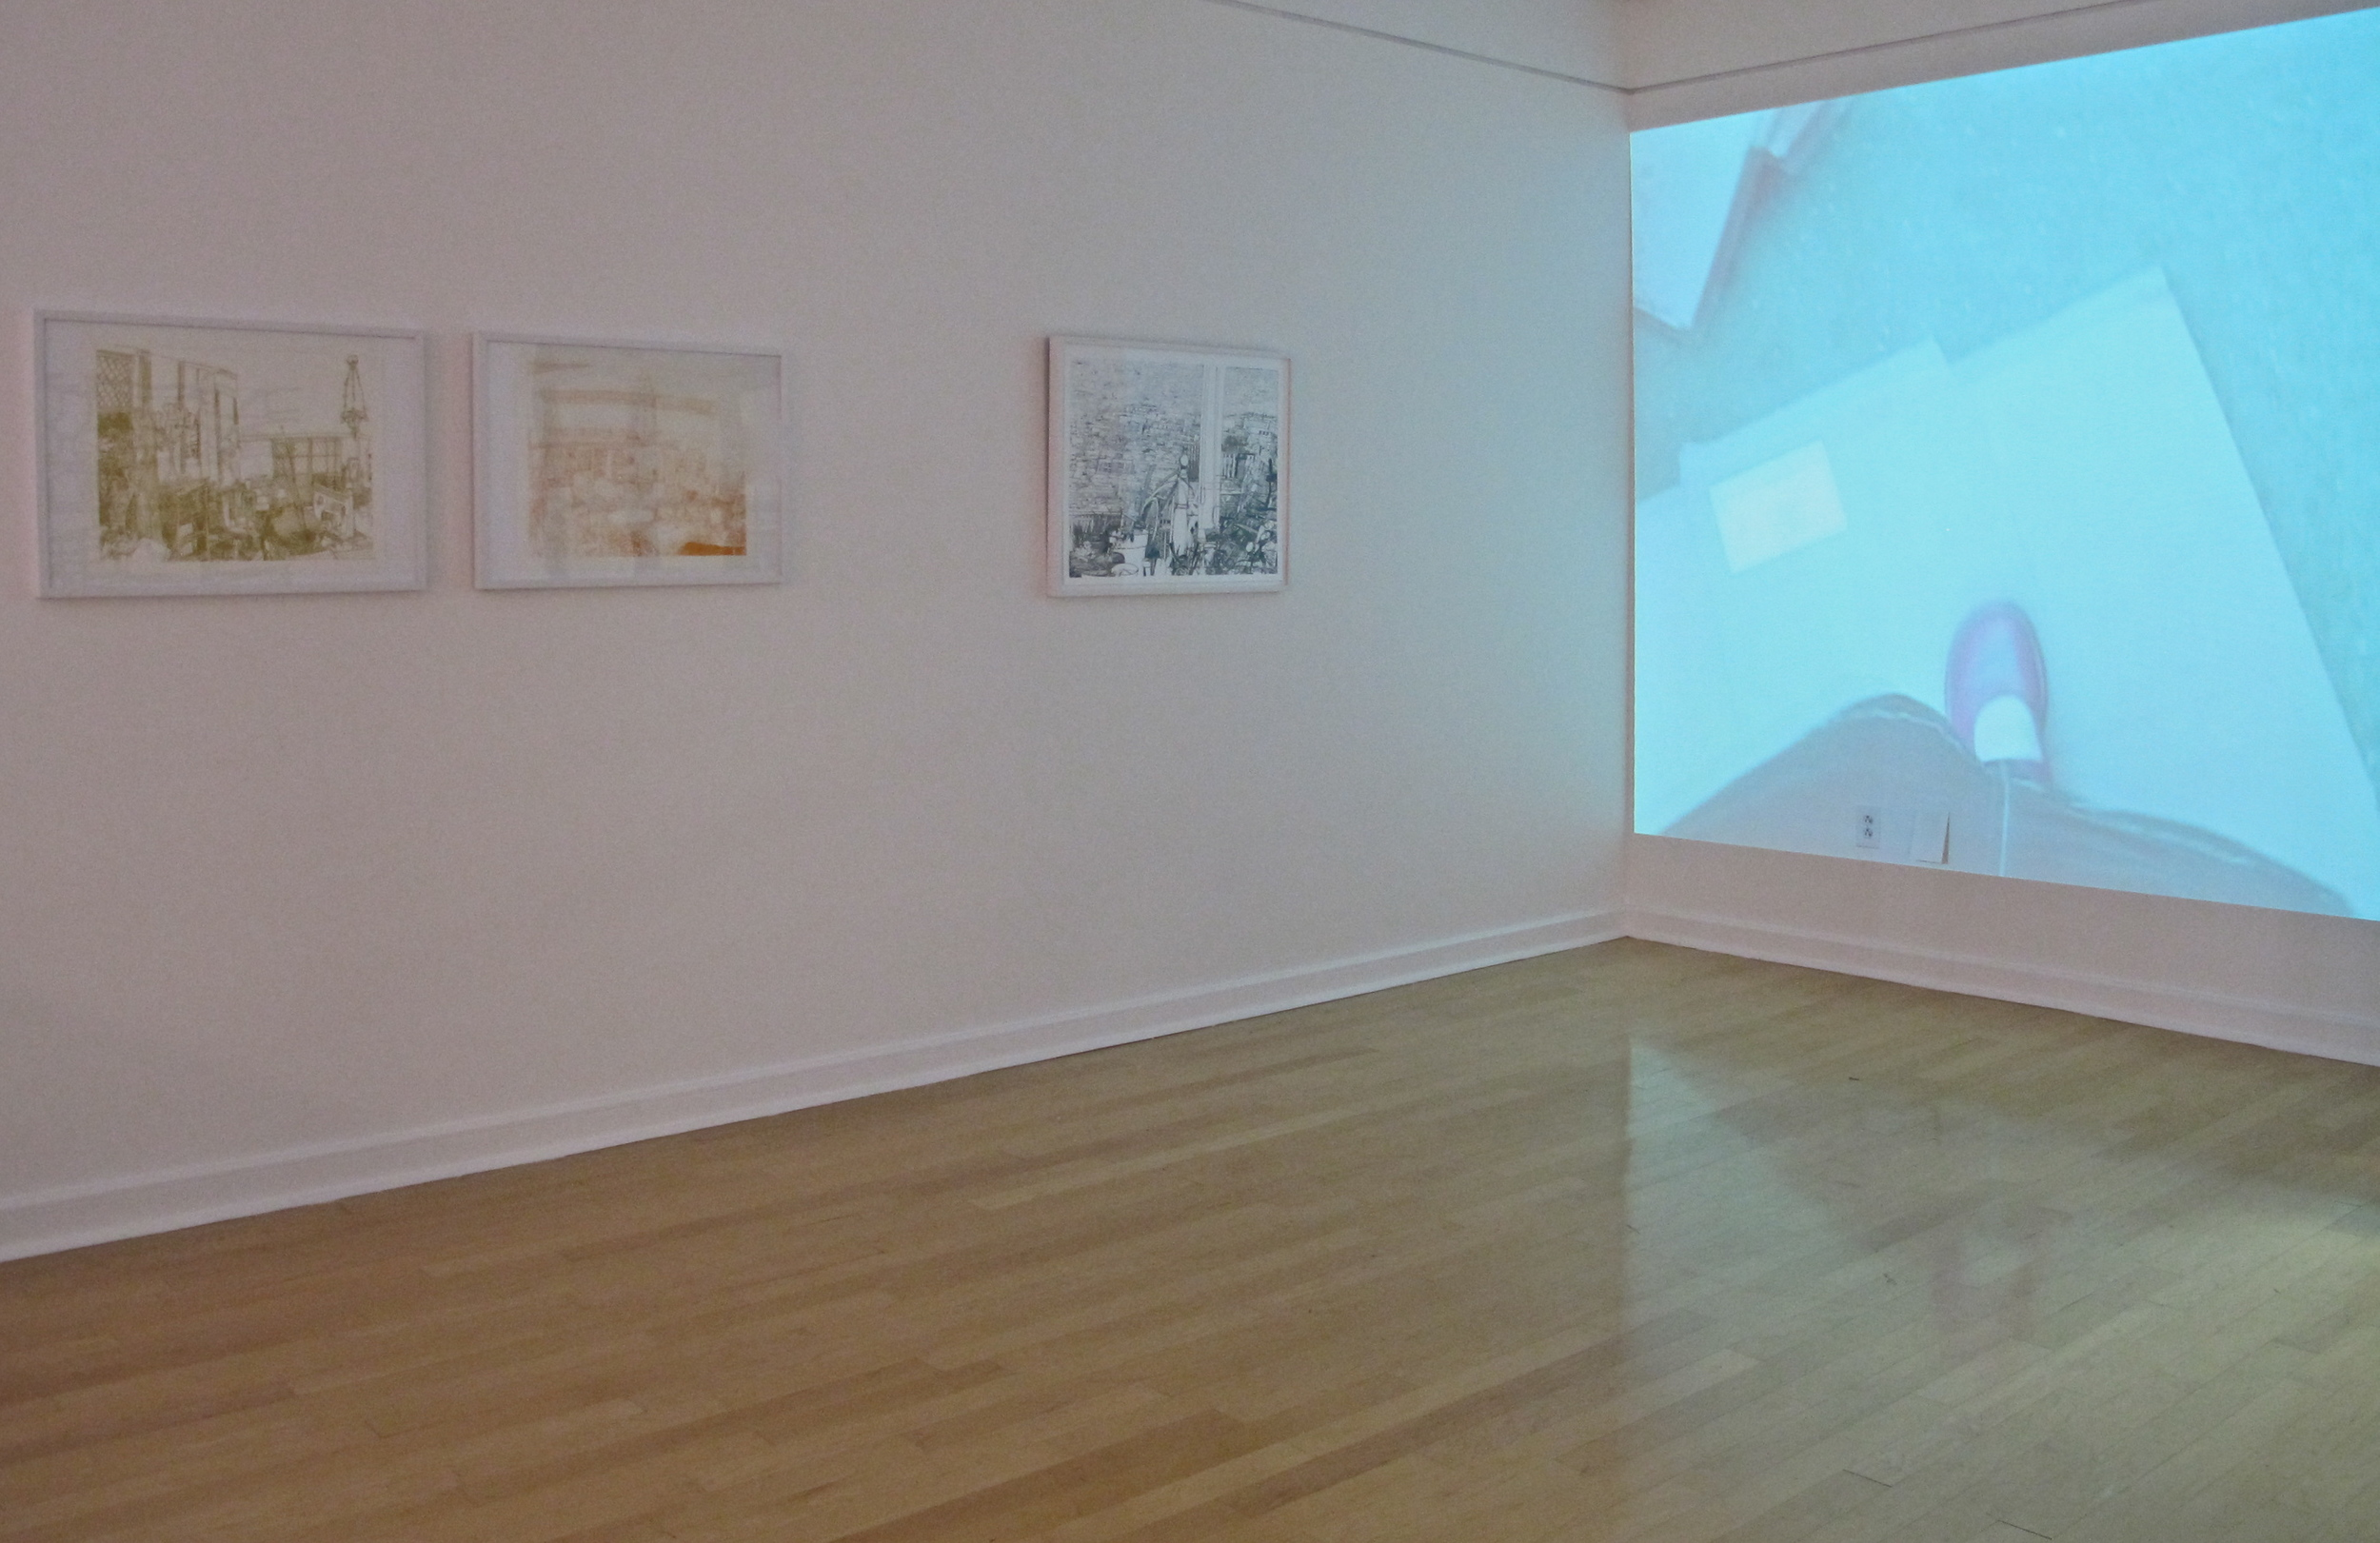 Drawings and Video by Josette Urso, as part of  Taking Place , Gallery 221@HCC.